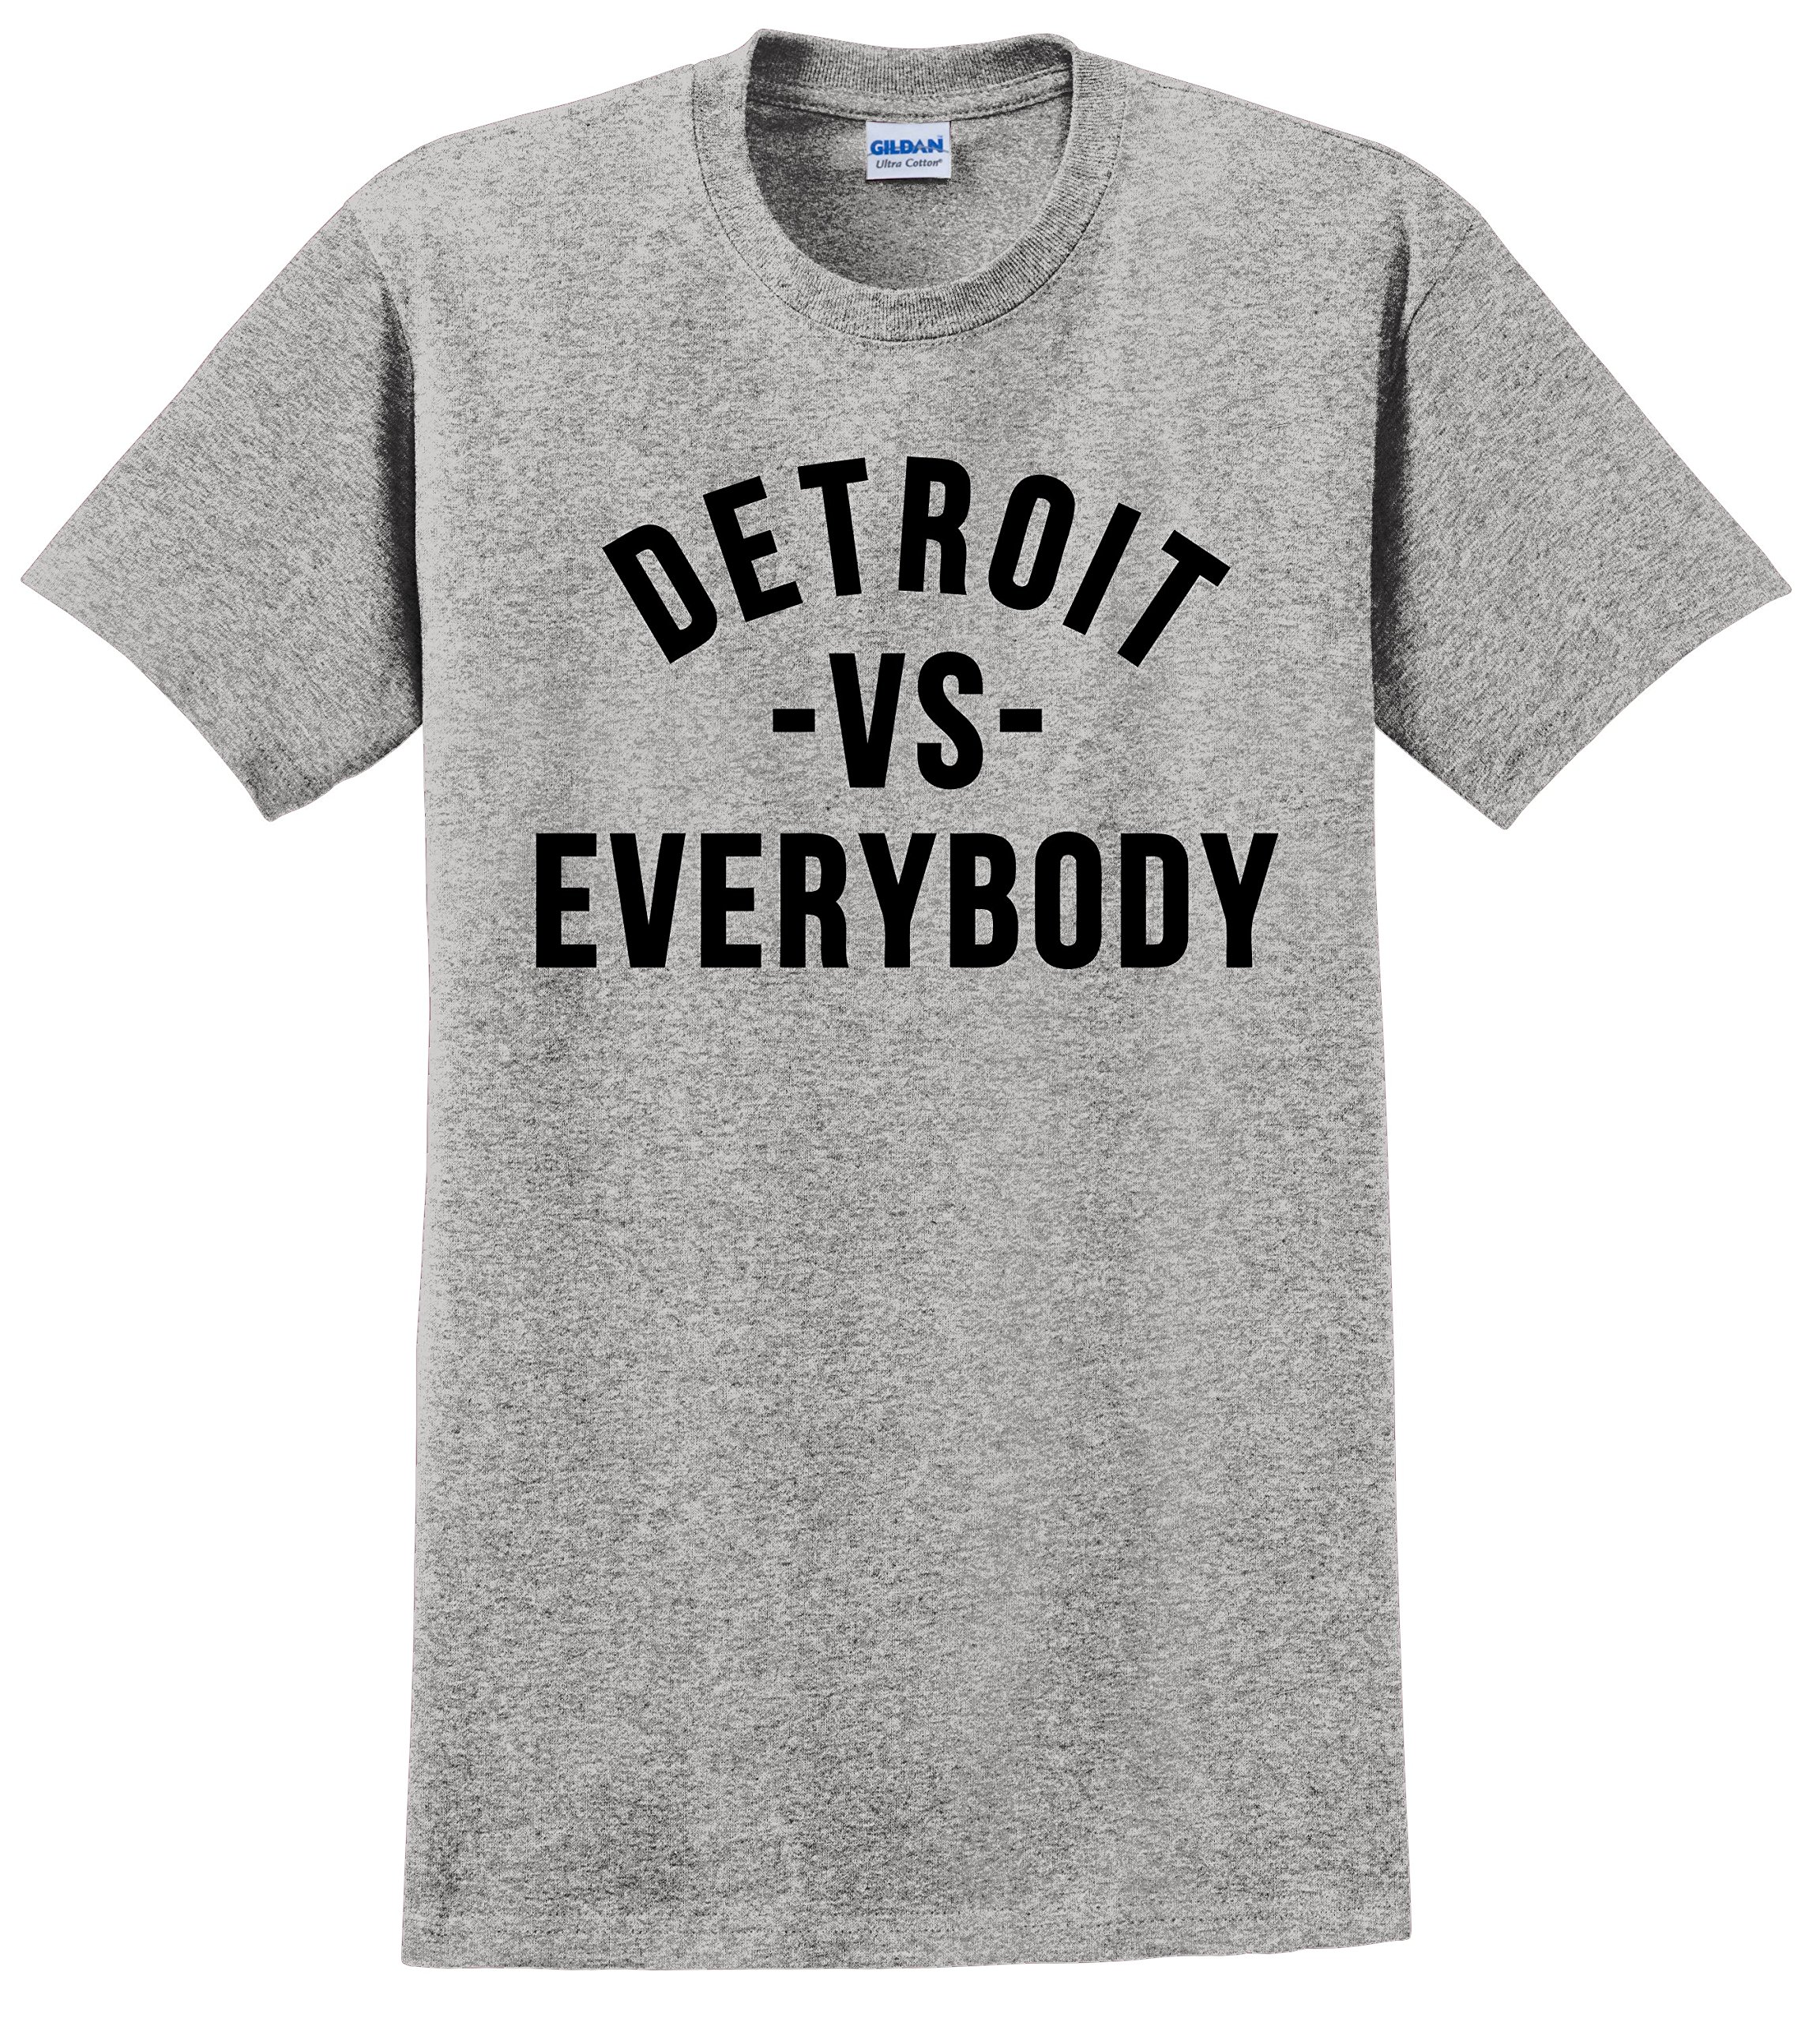 Detroit VS Everybody T Shirt No Love Eminem Big Sean Unisex Tee Shirts